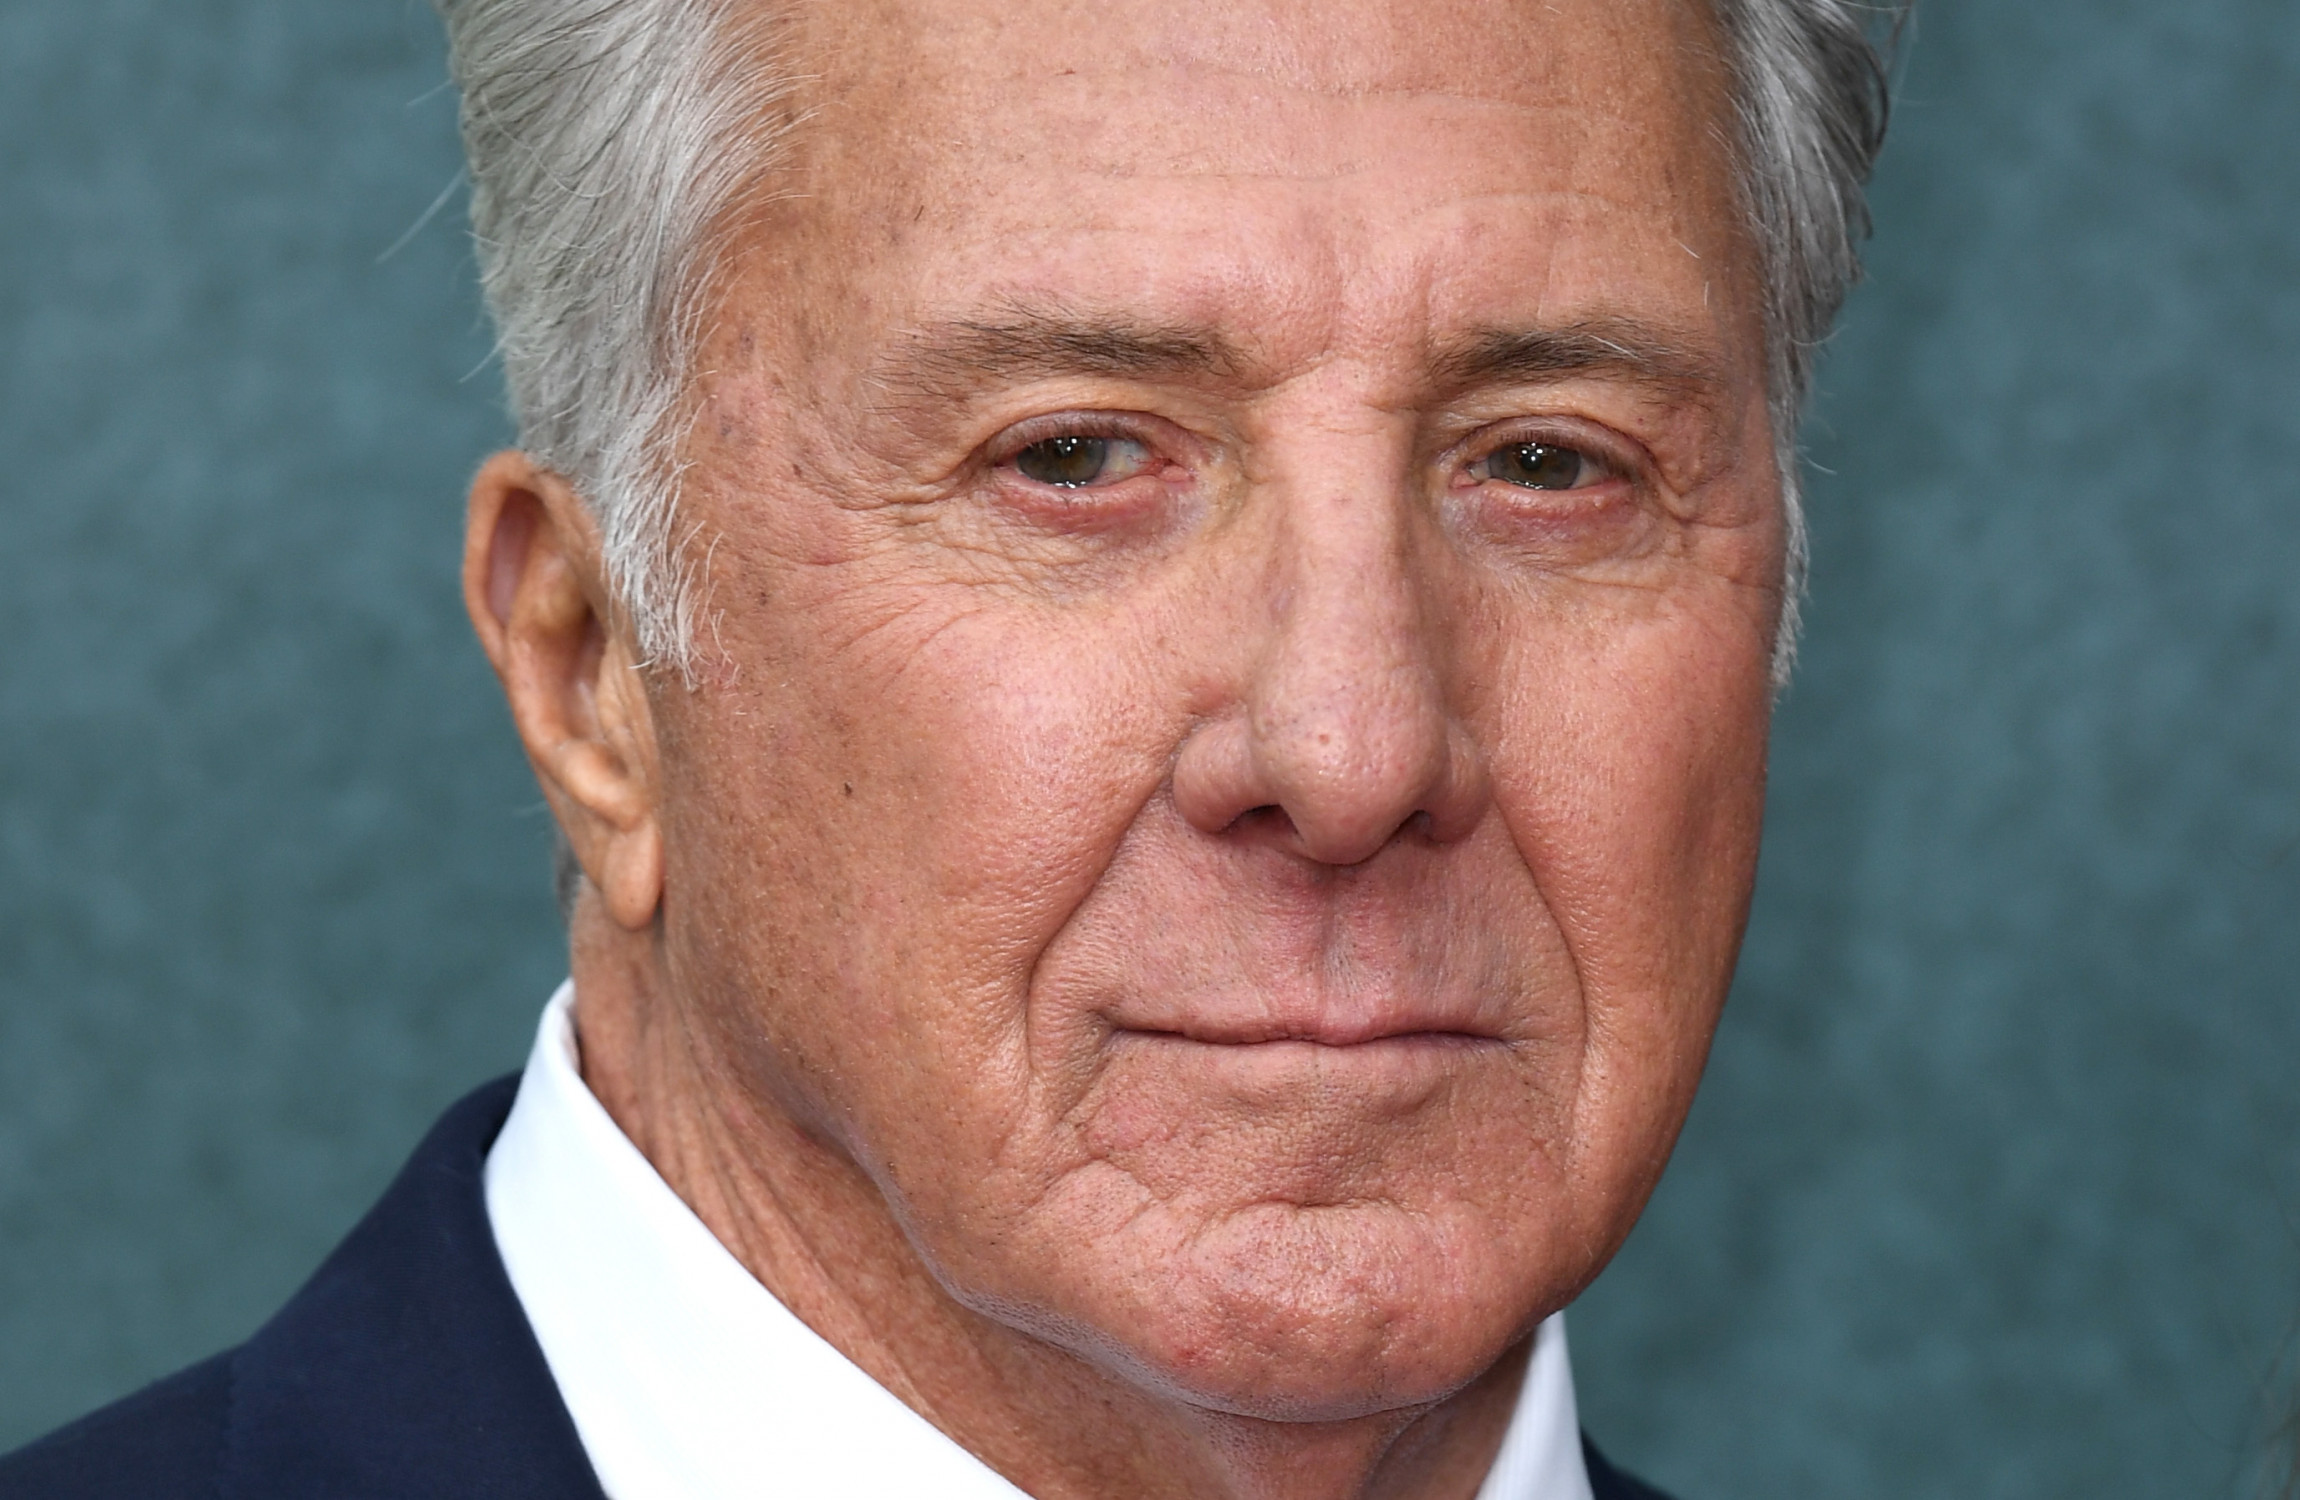 Dustin Hoffman Accused of Sexually Harassing a 17 Year Old